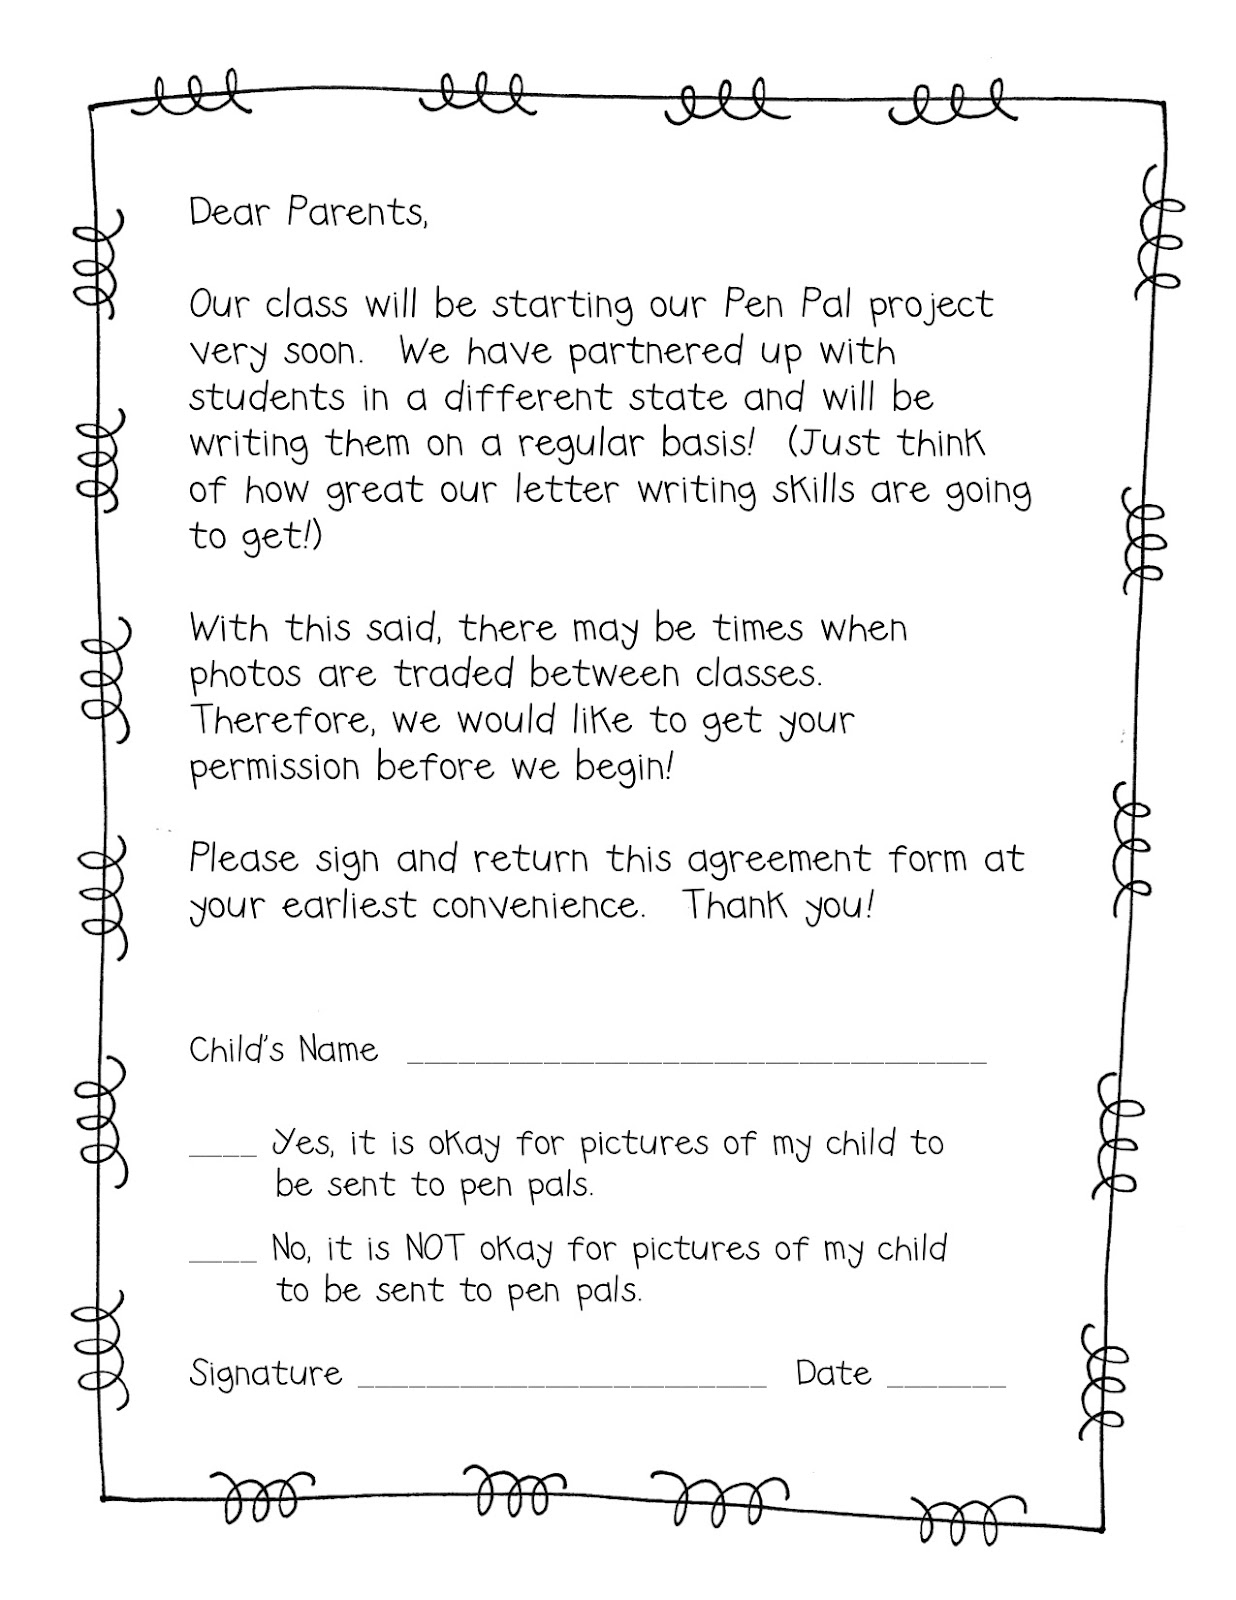 Form frenzy pen pal freebie teacher idea factory for Letter to parents template from teachers